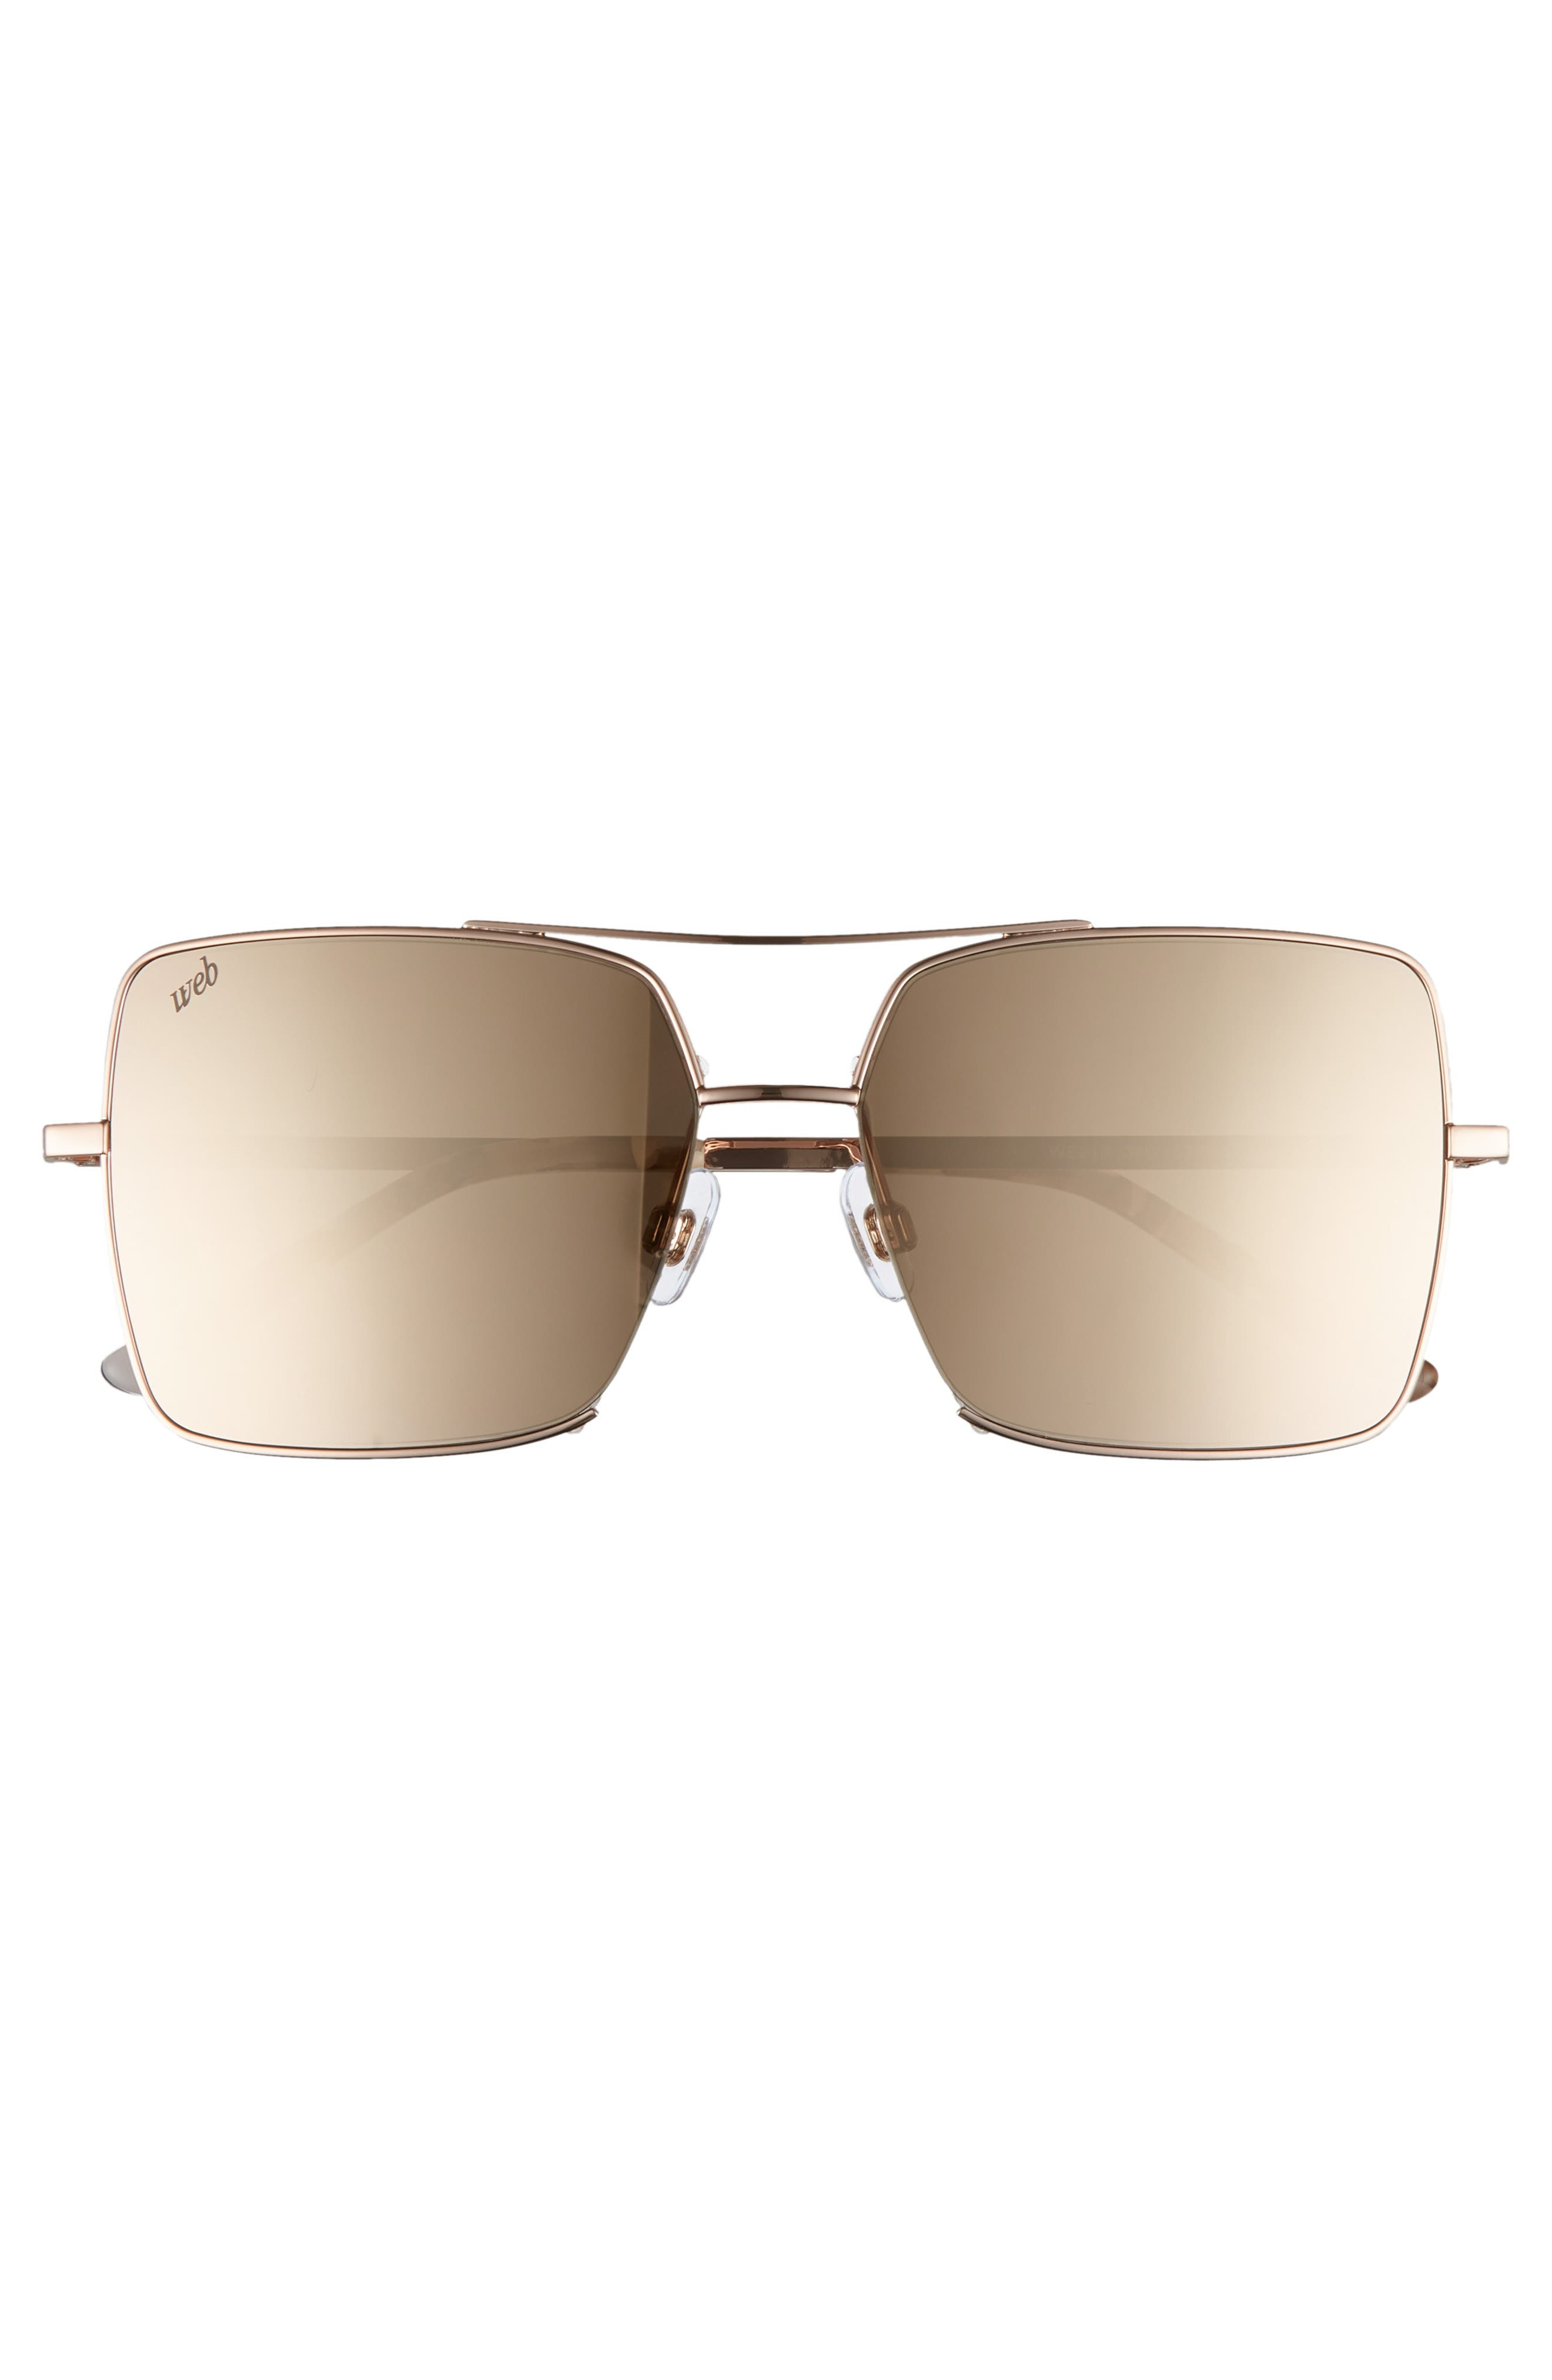 57mm Square Metal Aviator Sunglasses,                             Alternate thumbnail 3, color,                             Light Bronze/ Brown